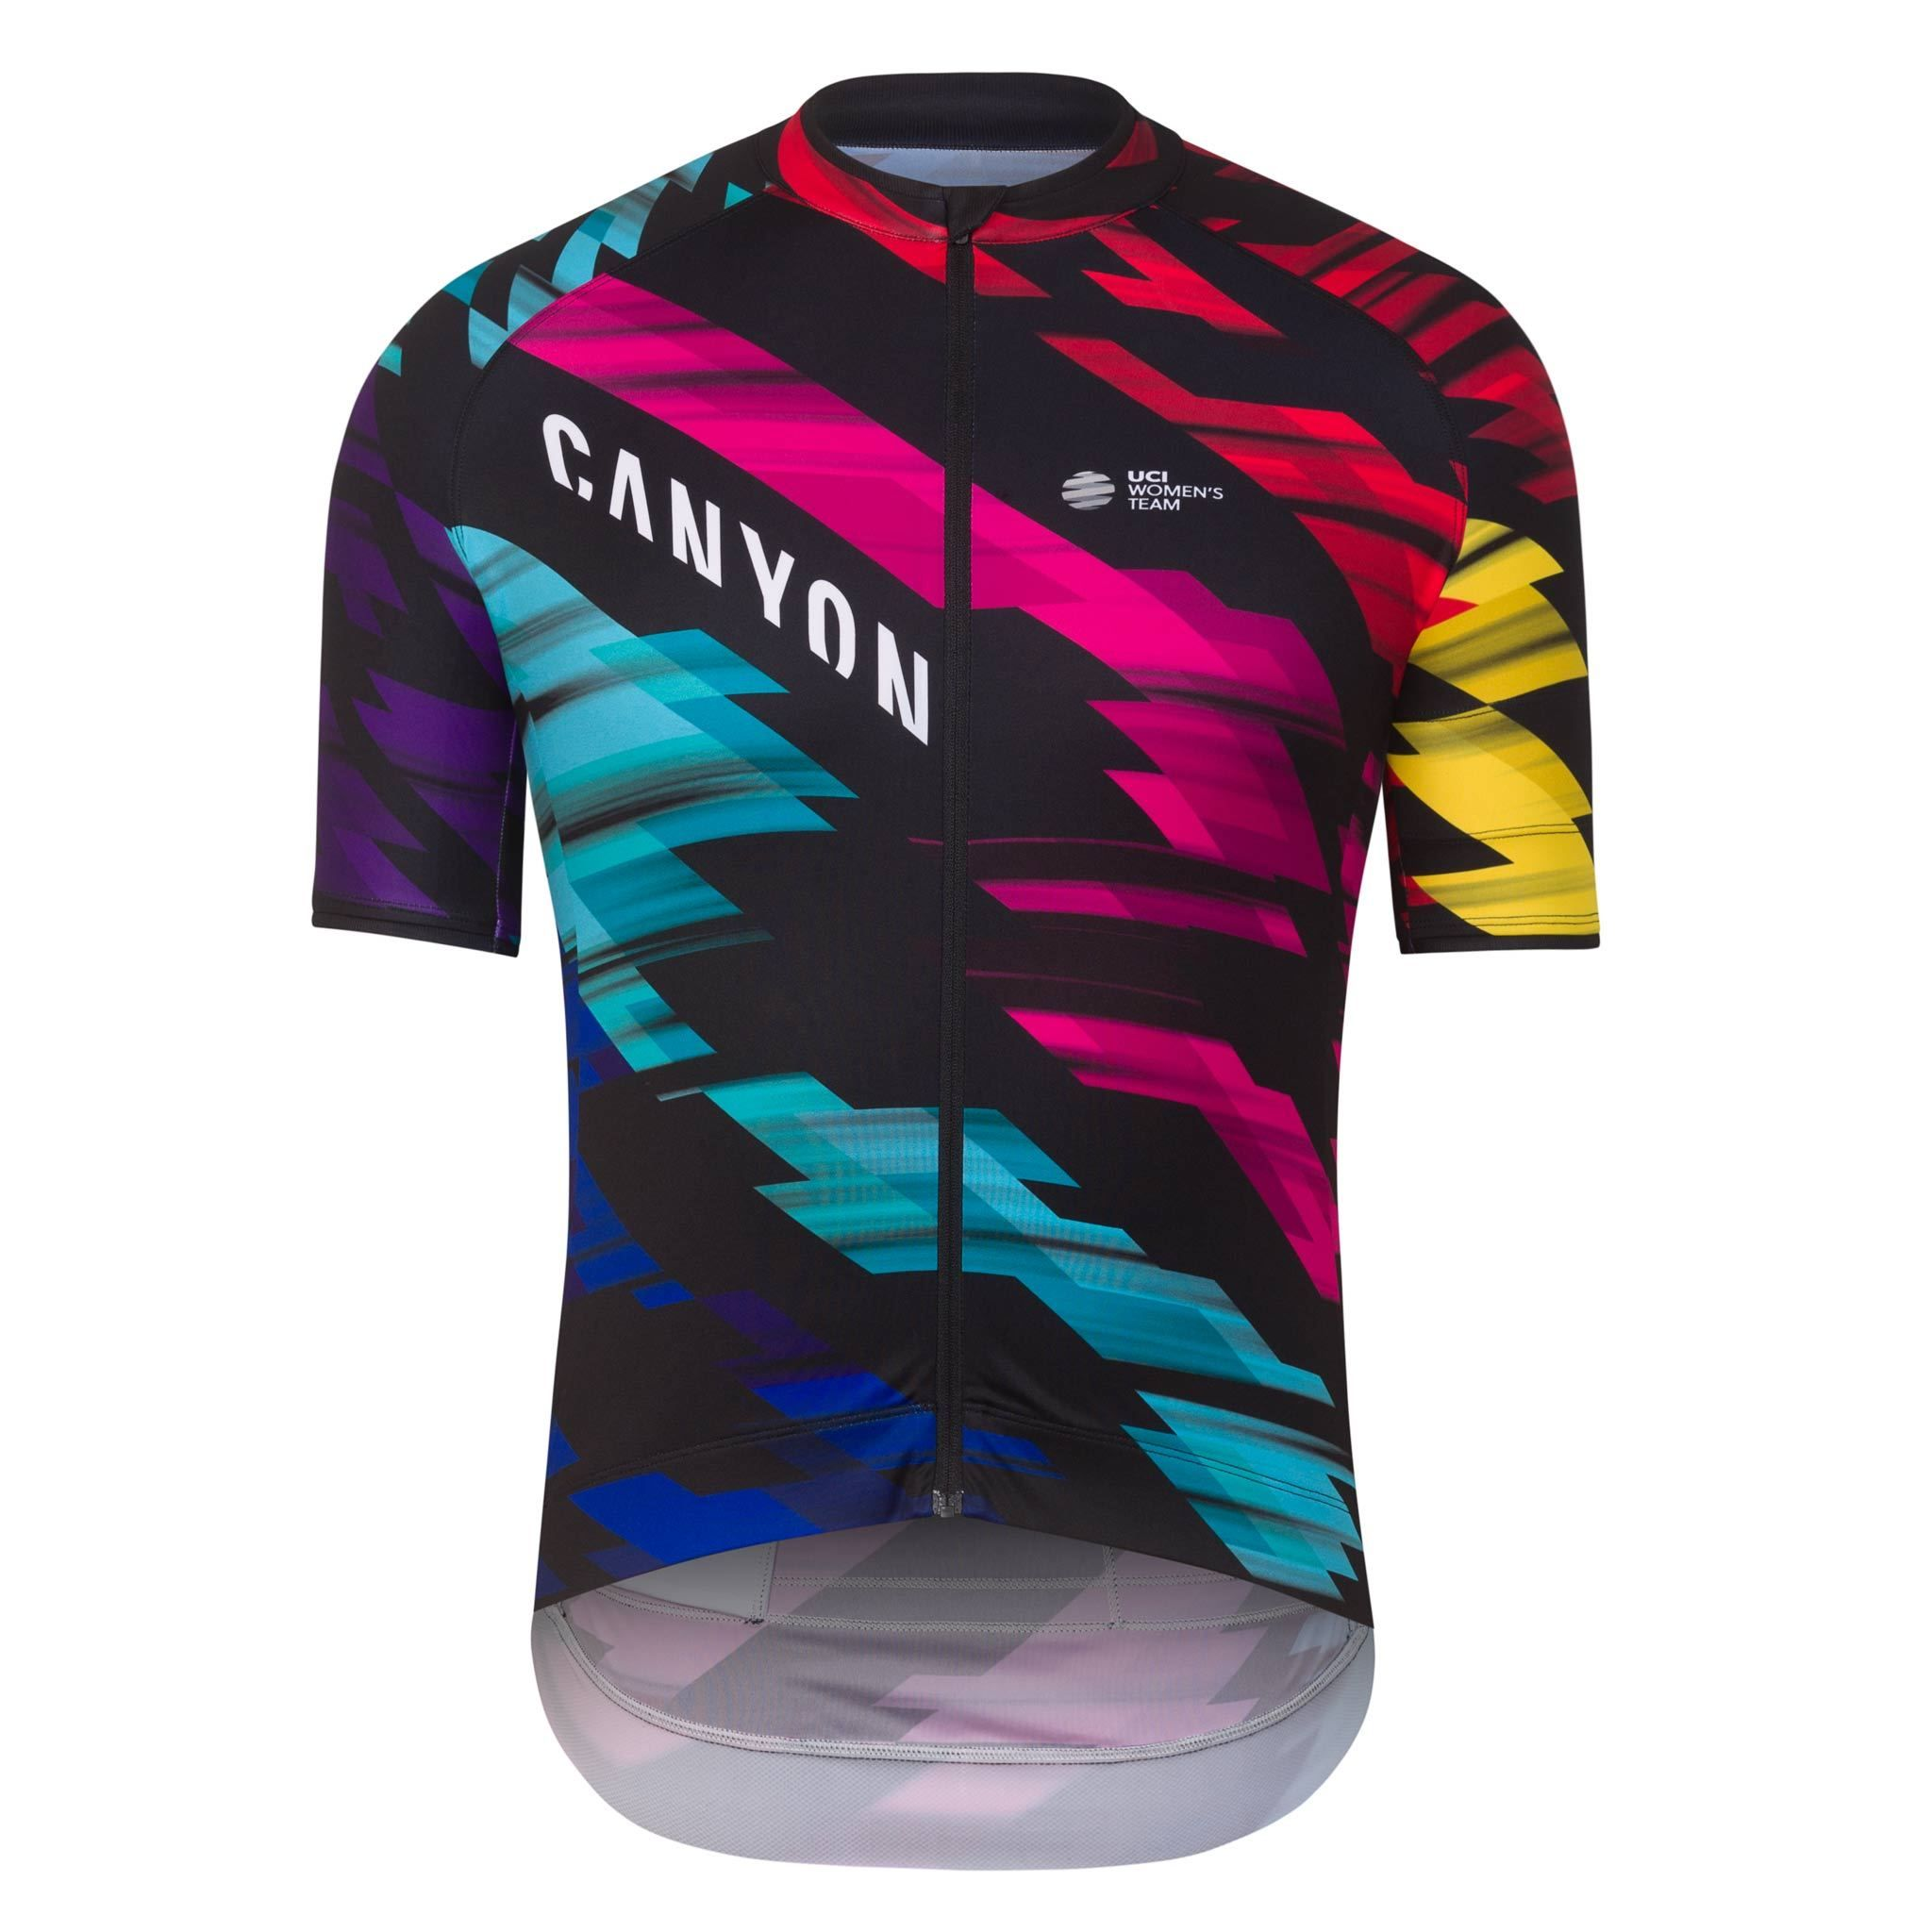 New Bike Cycling Sports Jerseys Men/'s Short Sleeve Shirts Bicycle Riding Maillot